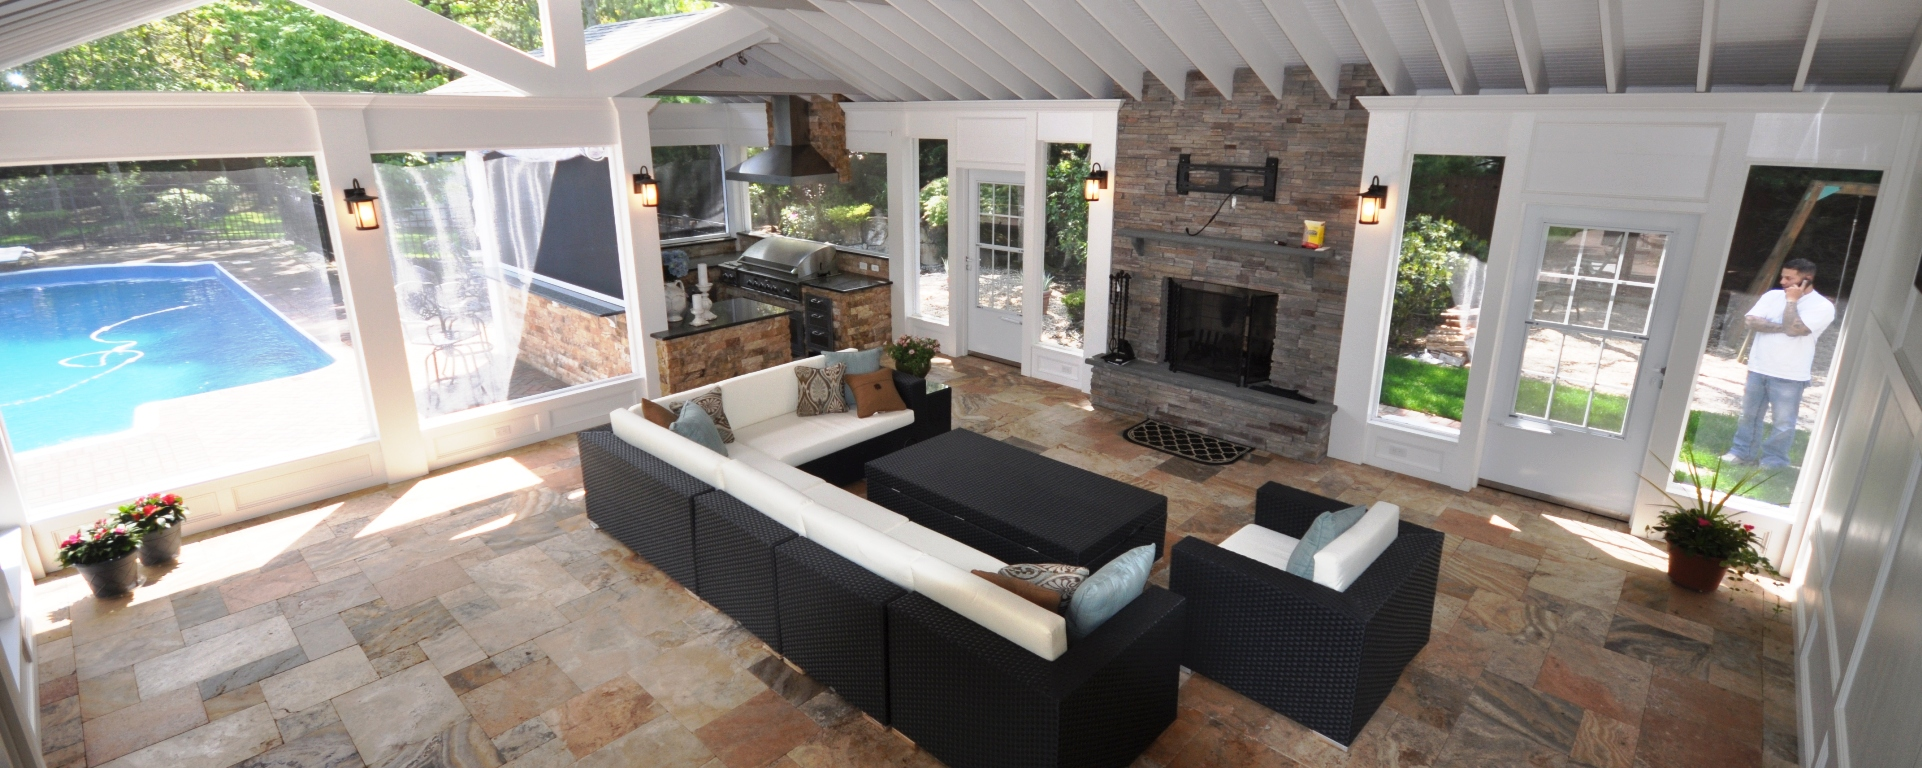 Home Remodeling   House Construction   Contractors   Company   Long Island NY.   Deck and Patio ...